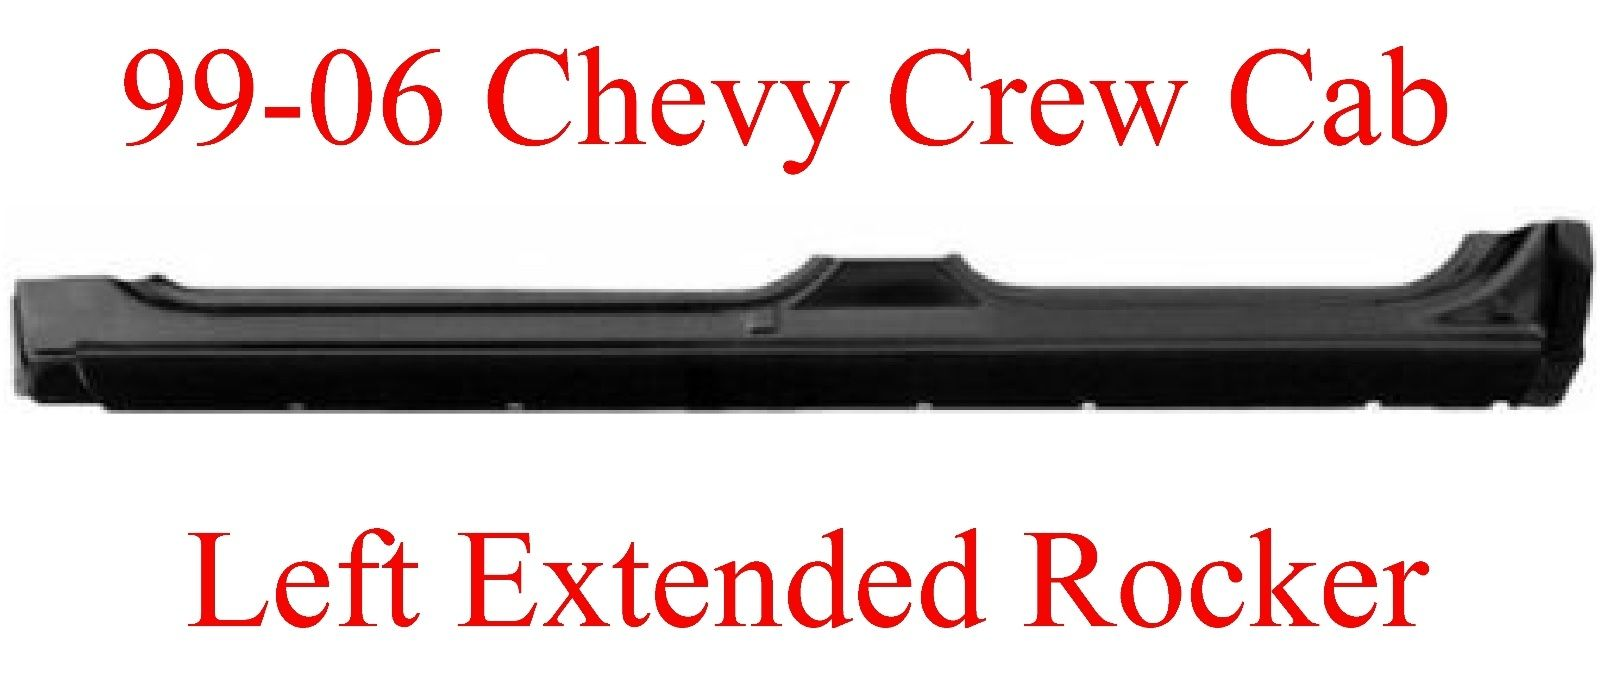 99-06 Chevy GMC Crew Cab Left Extended Rocker